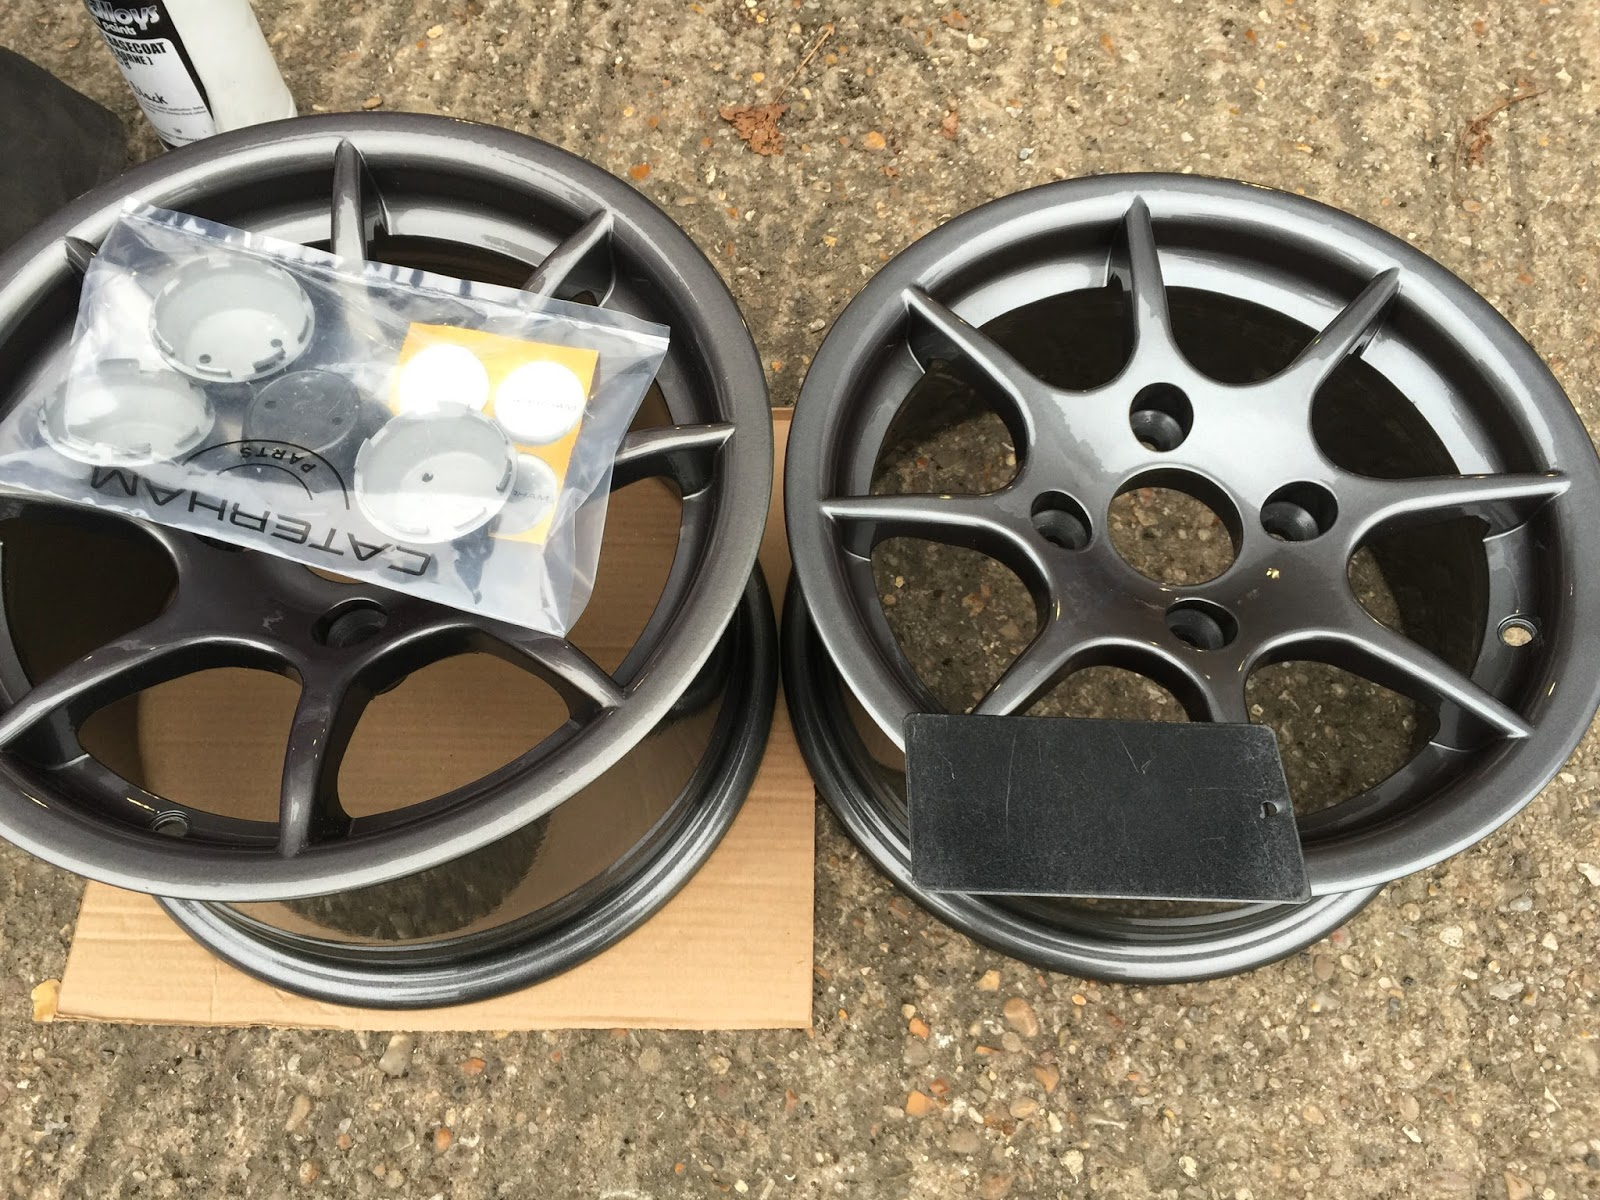 Anthracite Caterham R500 8 spoke alloy wheels with new colour swatch offered up against them.